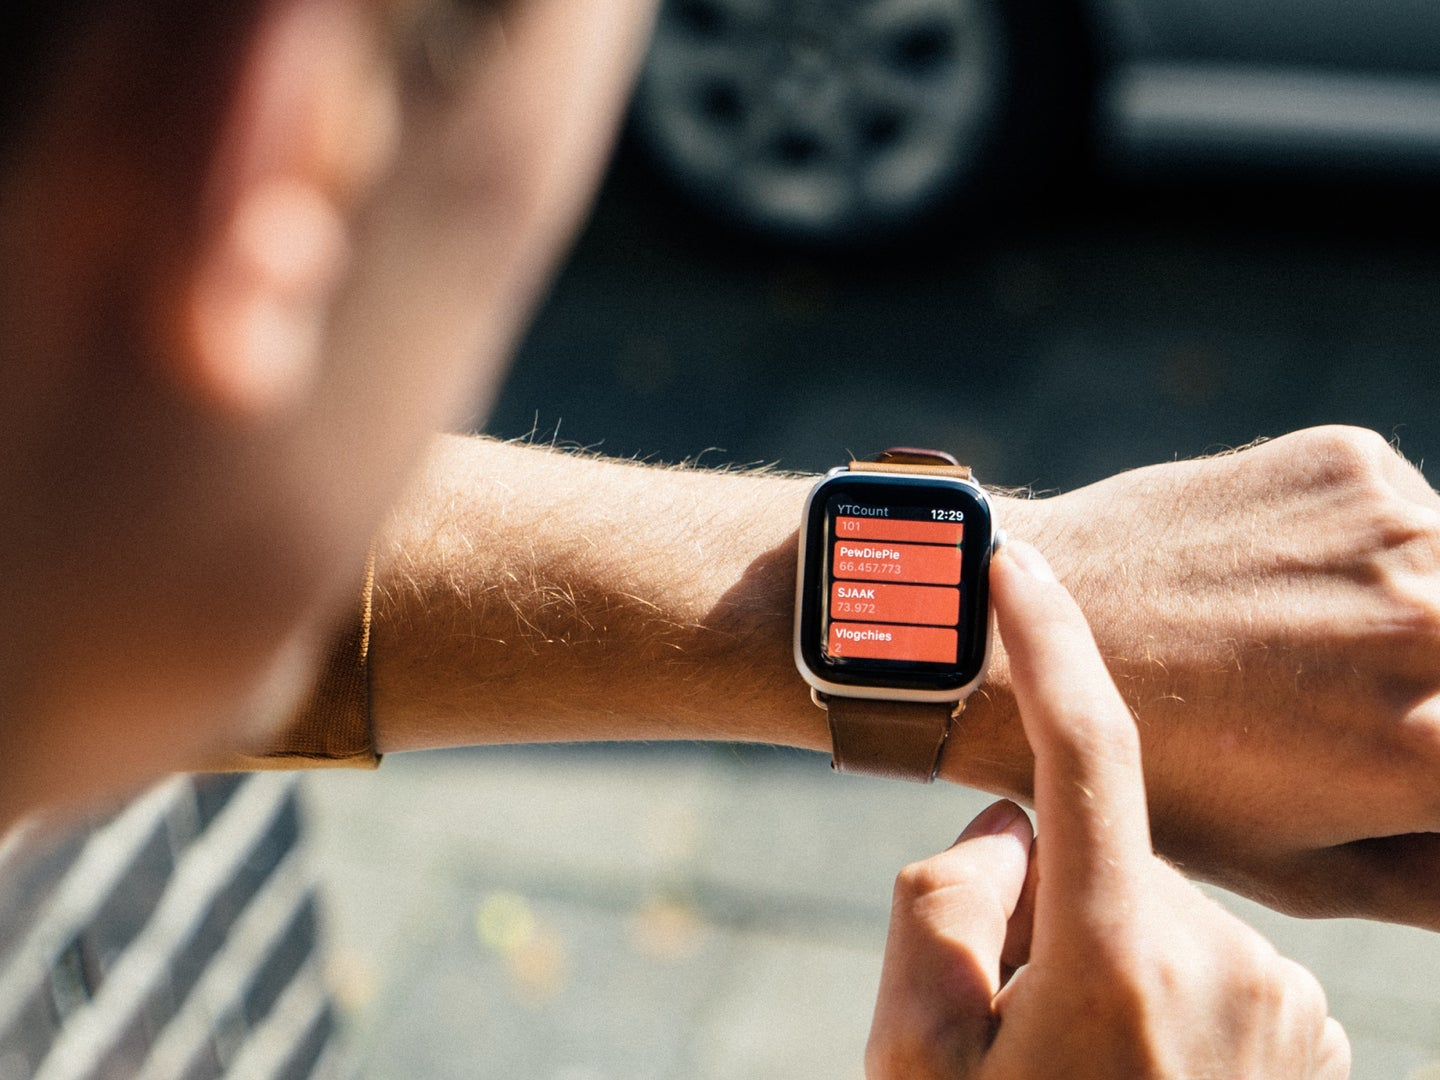 a man using an Apple Watch outside to use his smartphone less